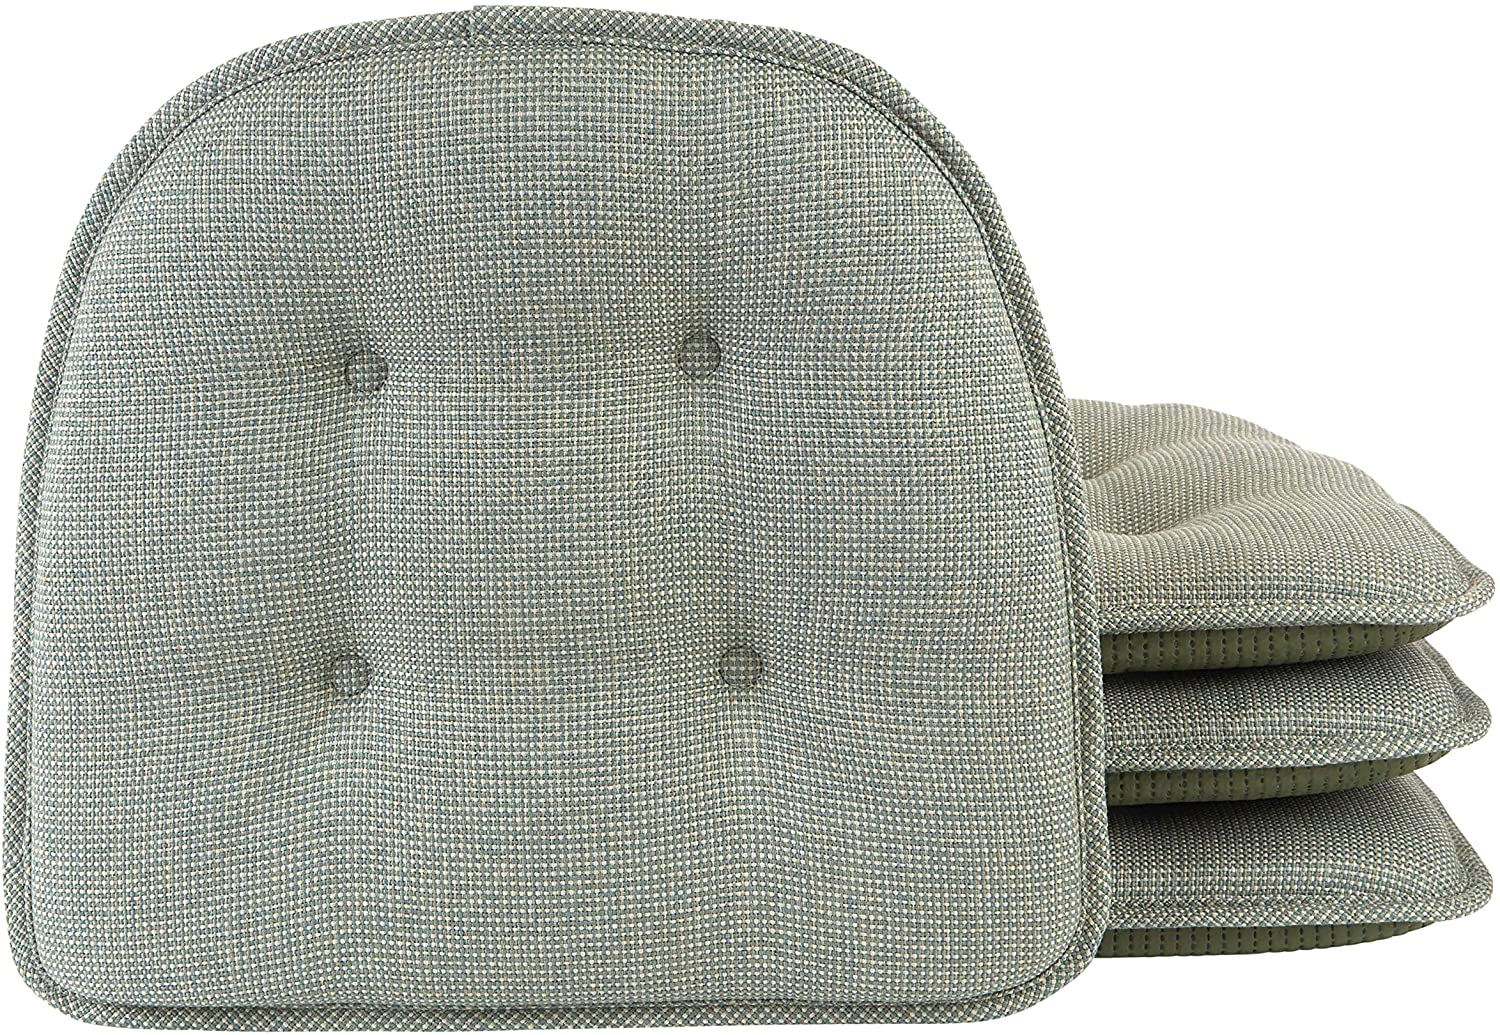 Klear Vu Omega Gripper Tufted Furniture Safe Non-Slip Dining Chair Cushion, 4 Pack, Spa 4 Pack